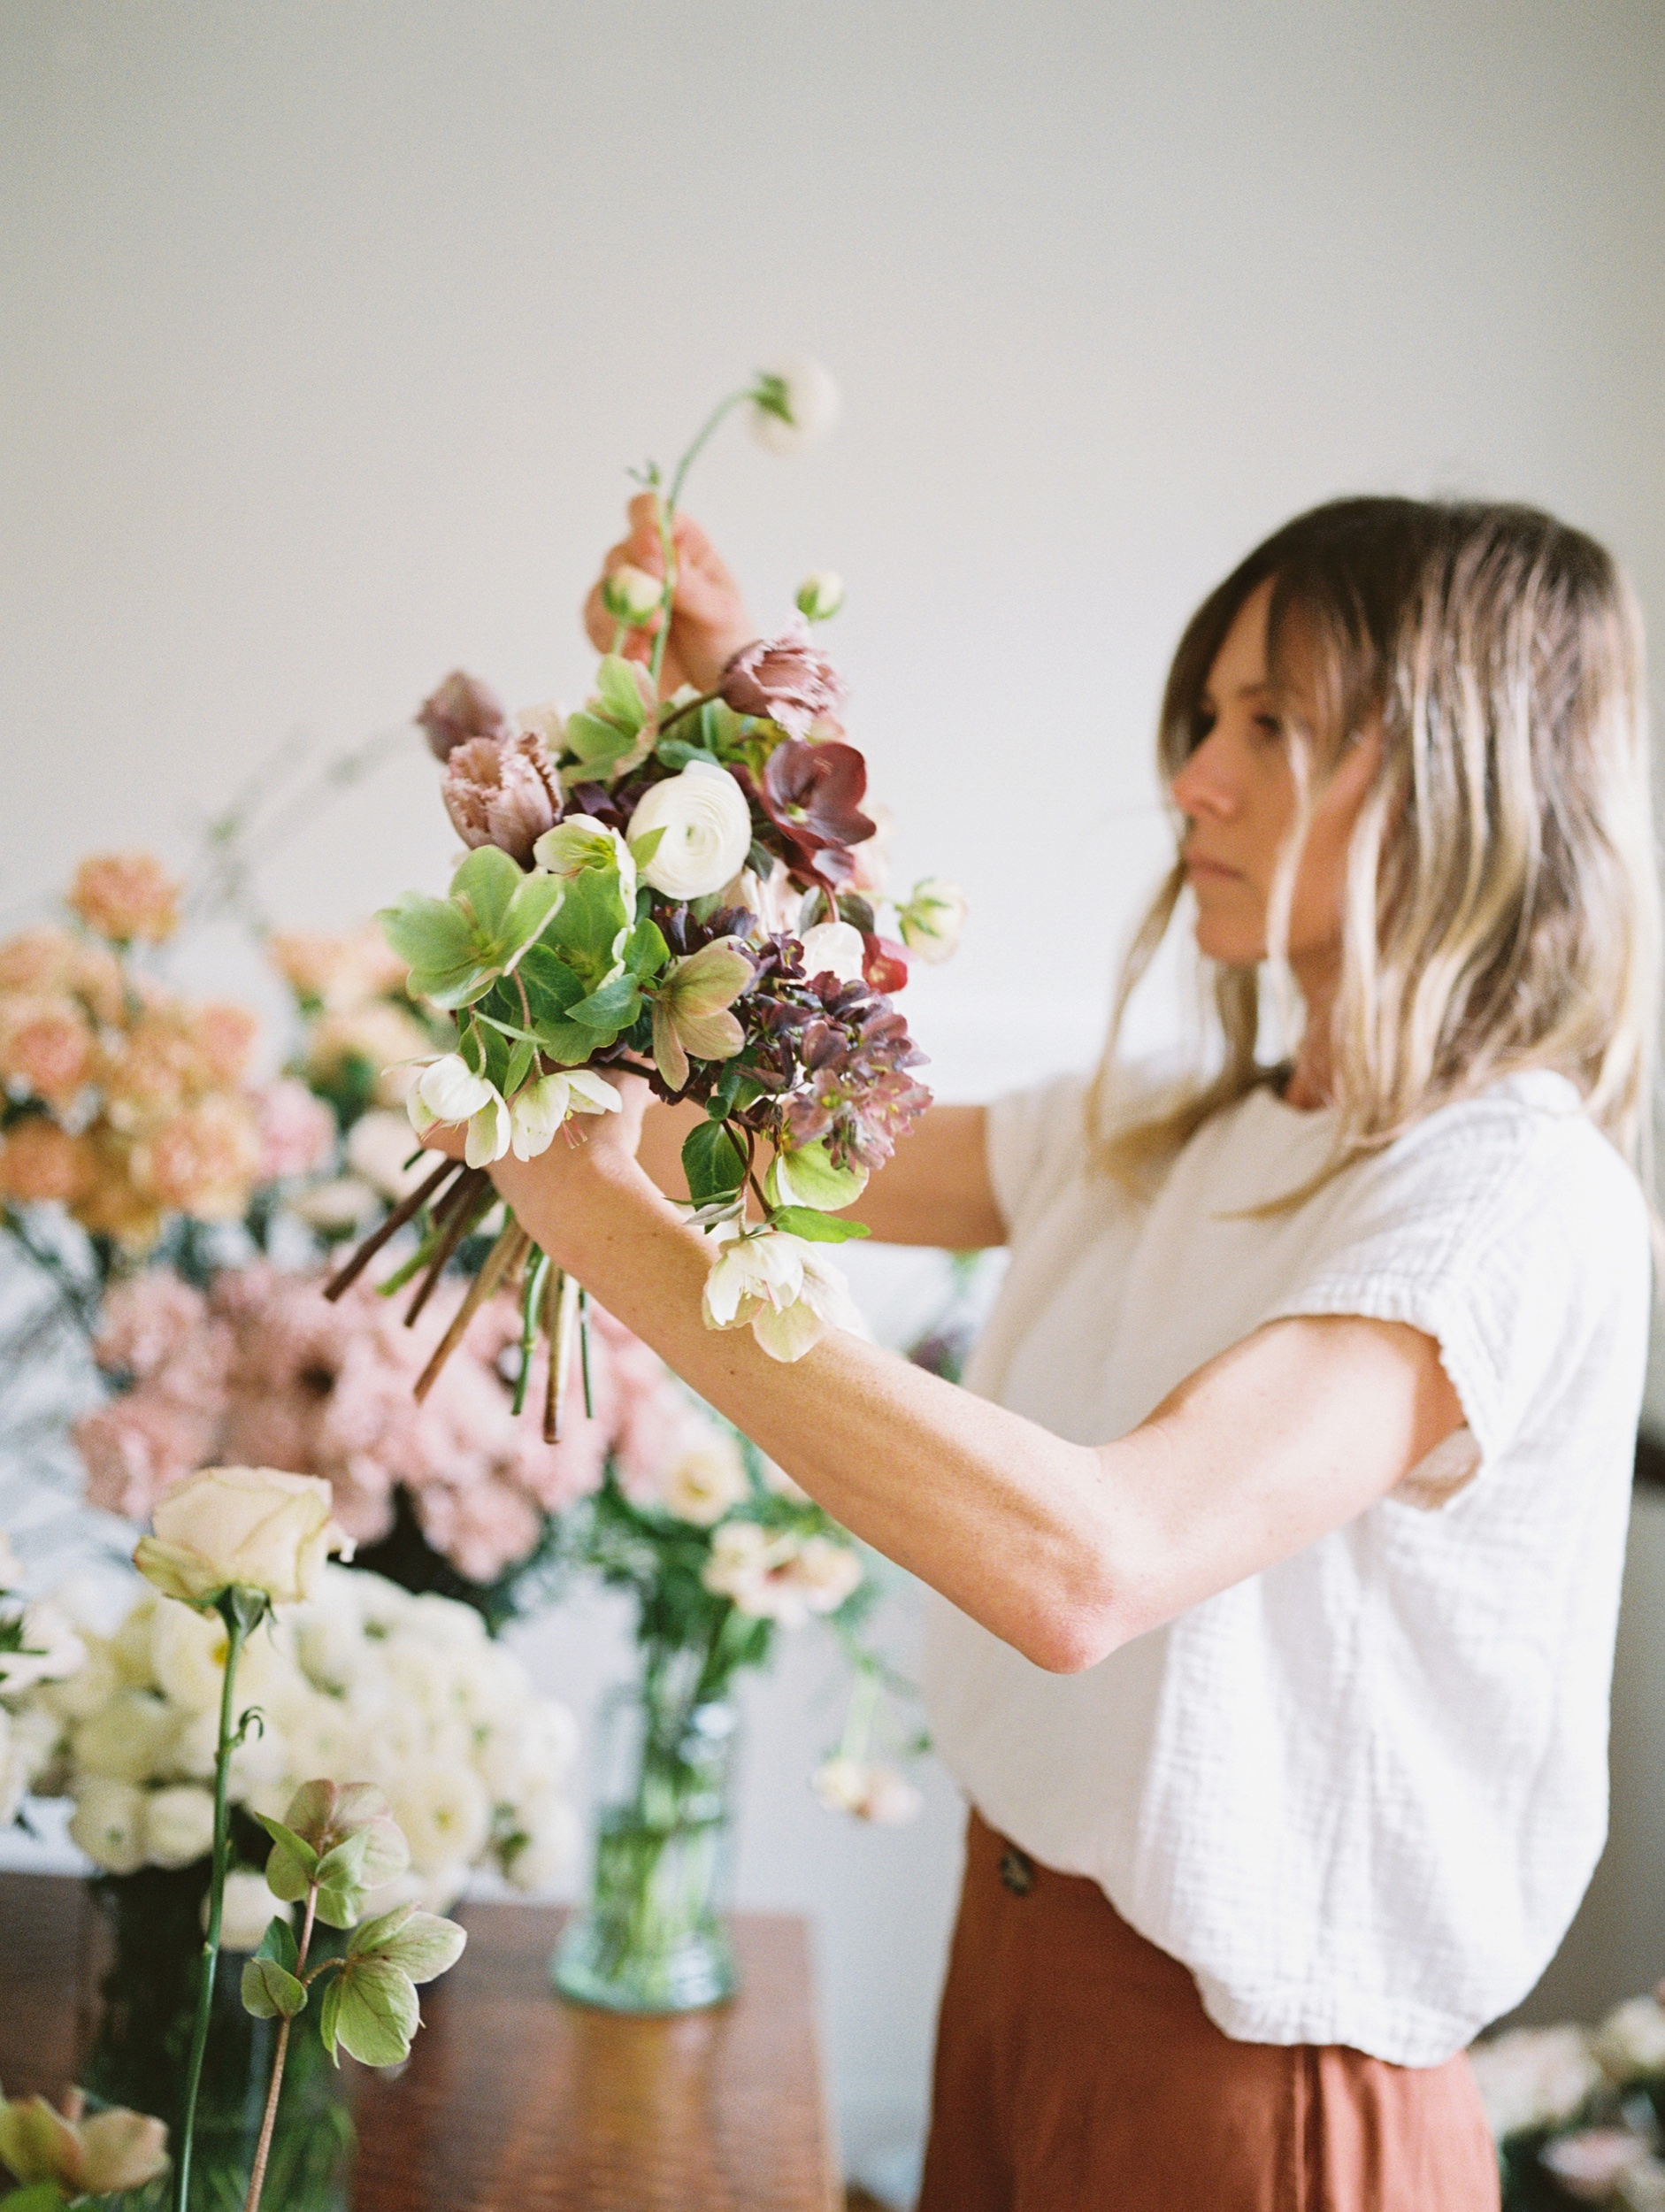 - With a background in horticulture, we're true plant lovers at heart. Inspired by the changing of the seasons and how plants grow on their own, our style is natural, wild and carefree. We source flowers from local and regional growers as well as our own, ever-growing cutting garden.